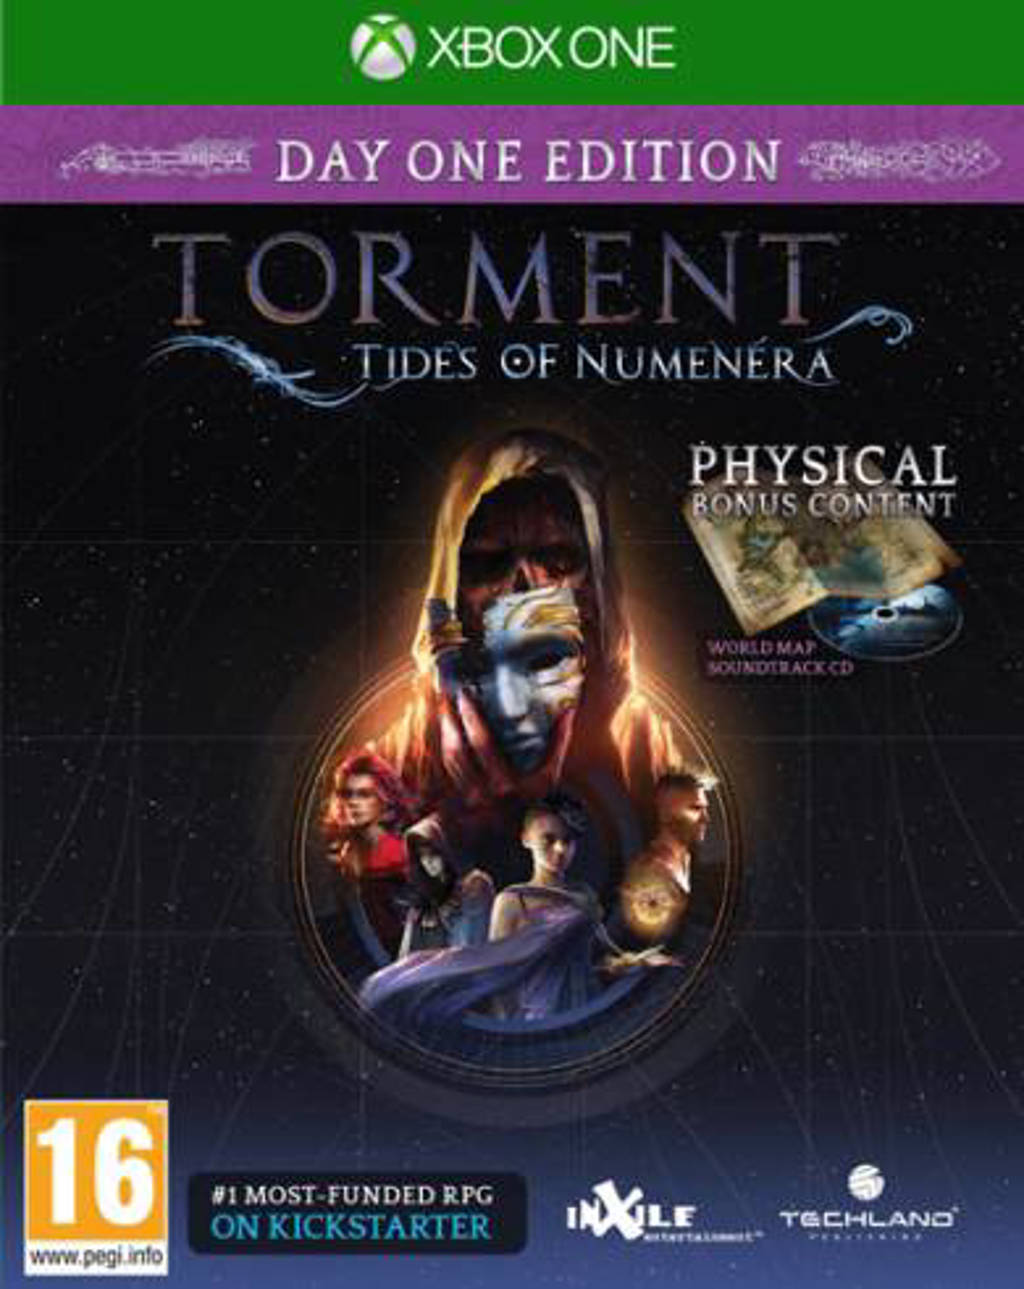 Torment - Tides of Numenera (Day one edition) (Xbox One)